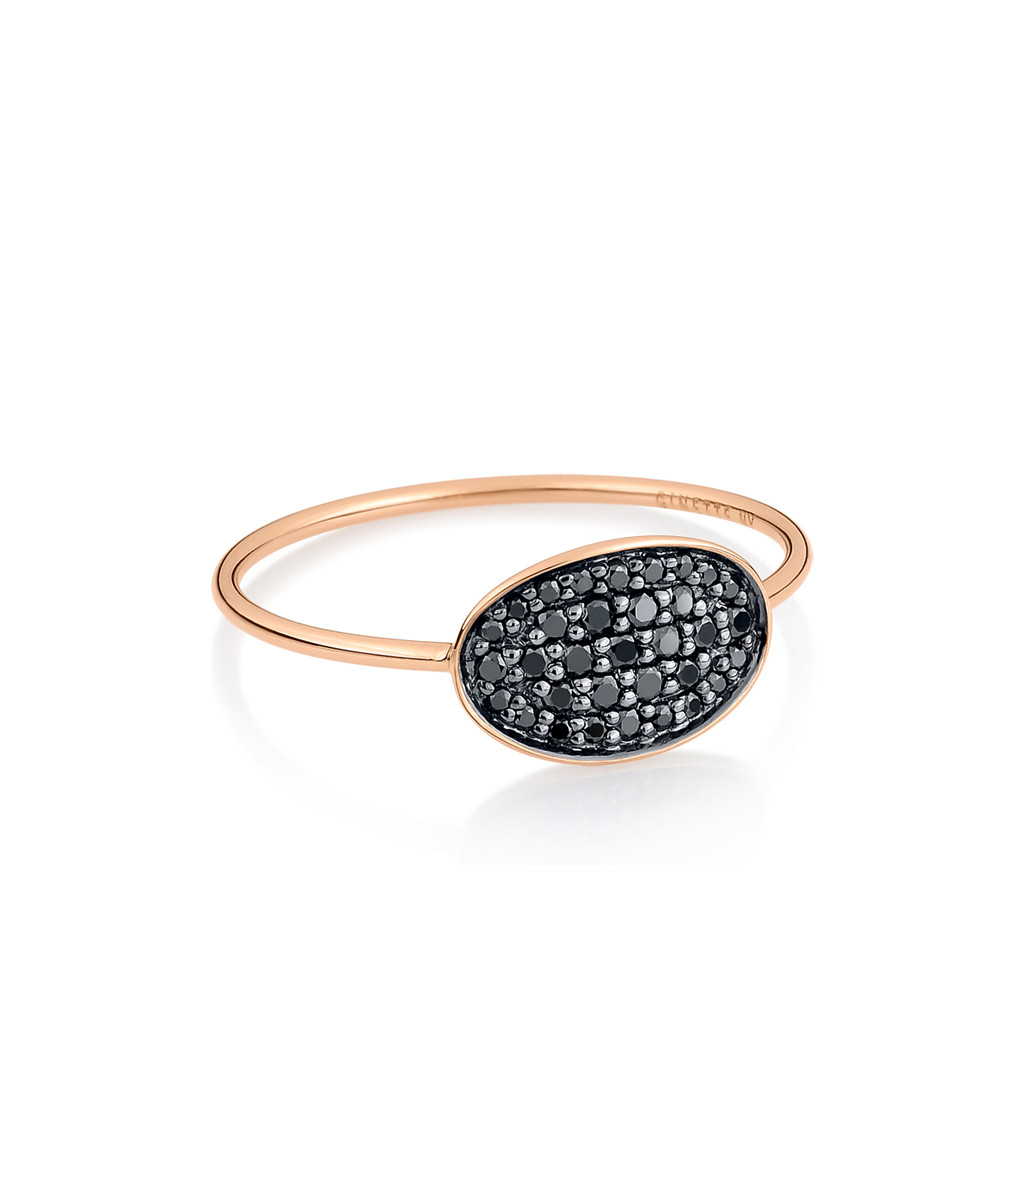 GINETTE_NY - Bague Sequin Mini Or Rose Diamants Noirs